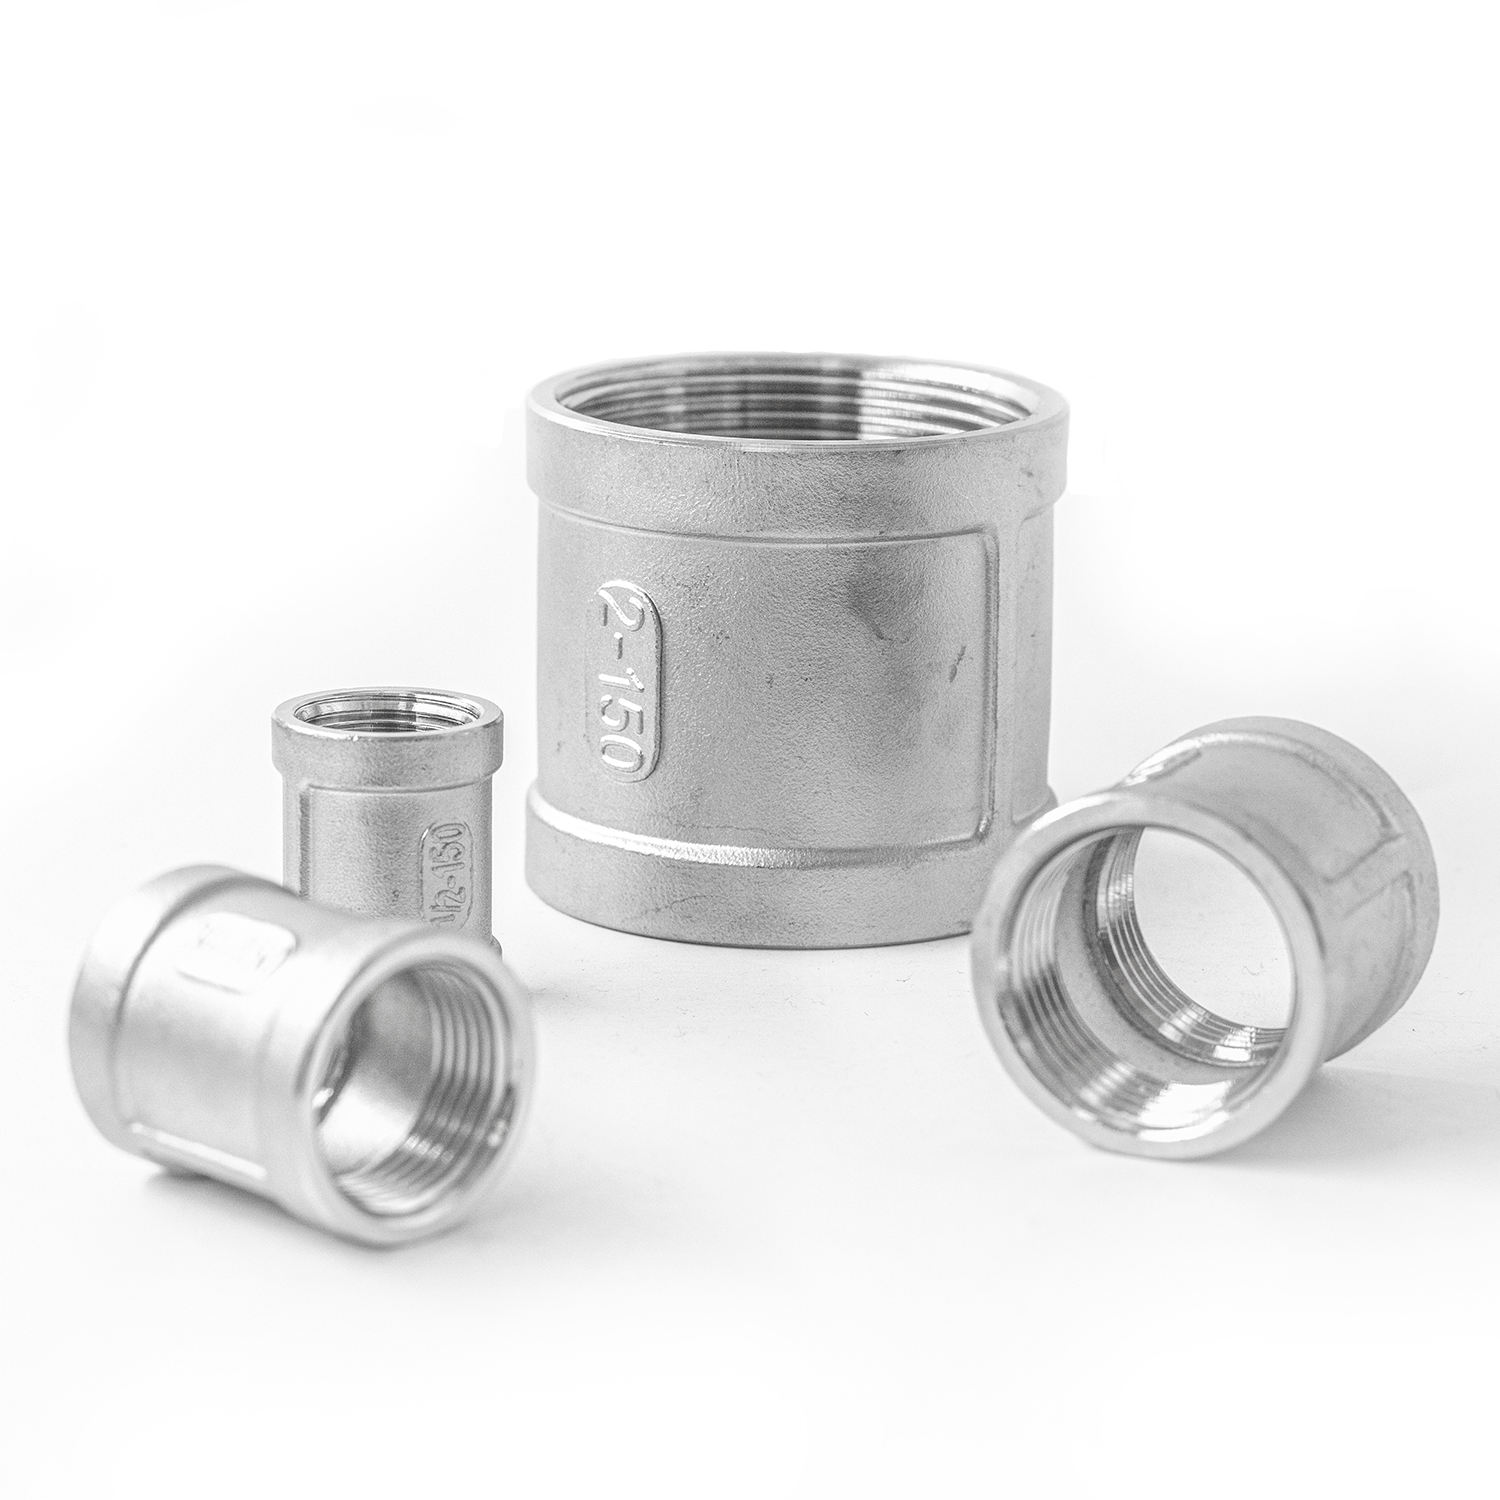 tube type fittings straight quick connect water union tubing stainless steel flexible pipe fitting hydraulic coupling